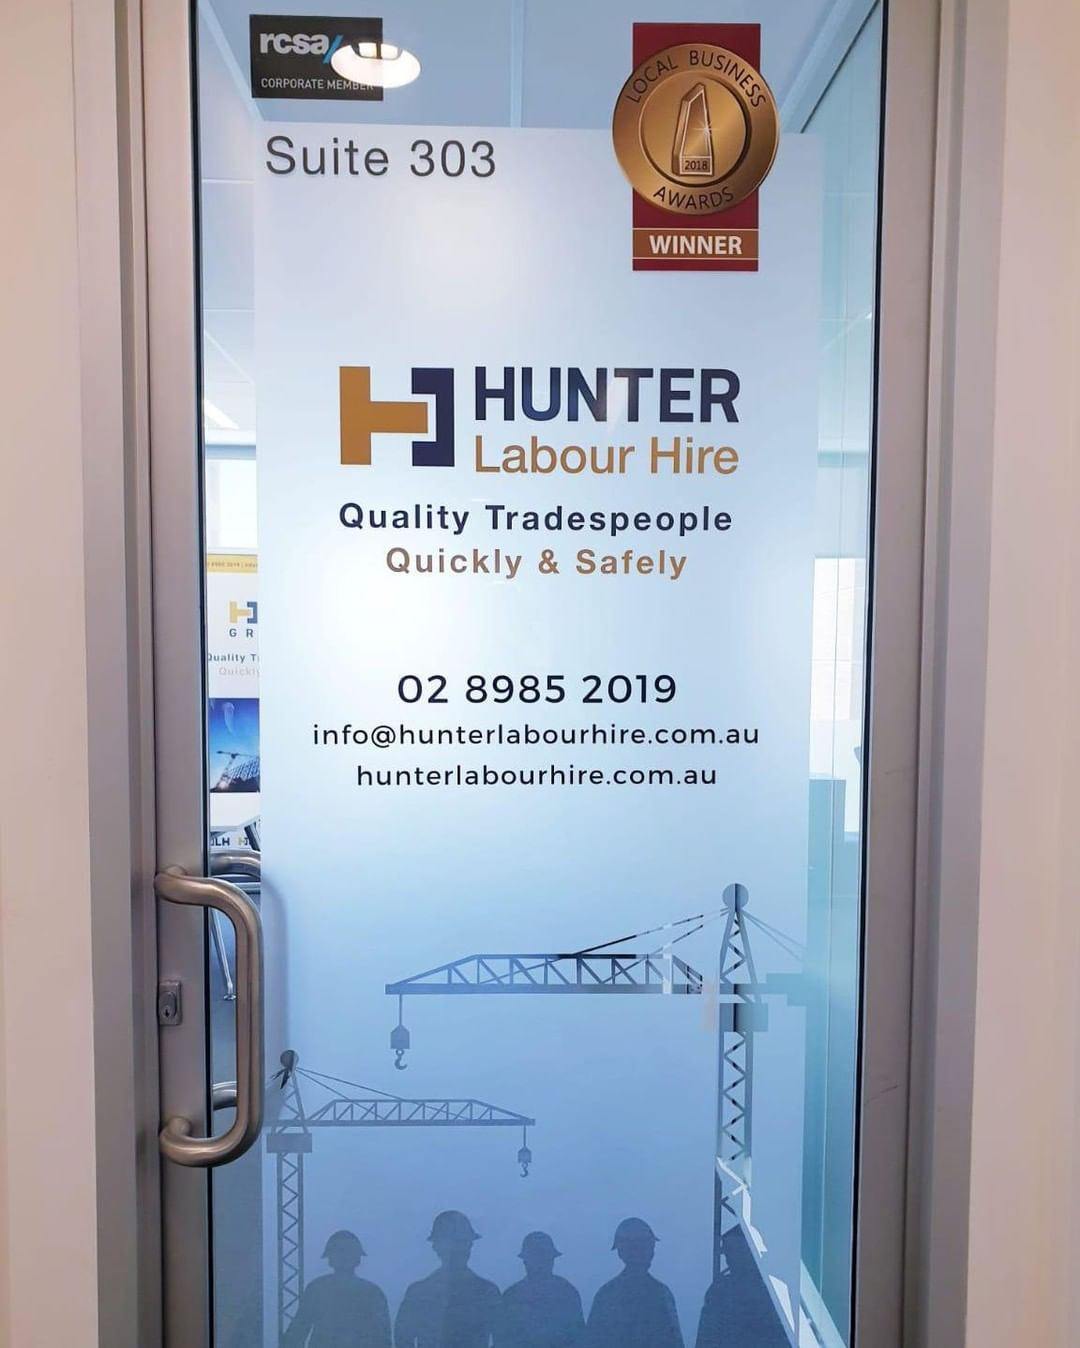 Don't be fooled by the photo, our door is always open. Come visit us at 303/360 Oxford St, Bondi Junction ___ Contact Hunter Labour Hire today! Telephone: (02) 8985 2019 Email: info@hunterlabourhire.com.au